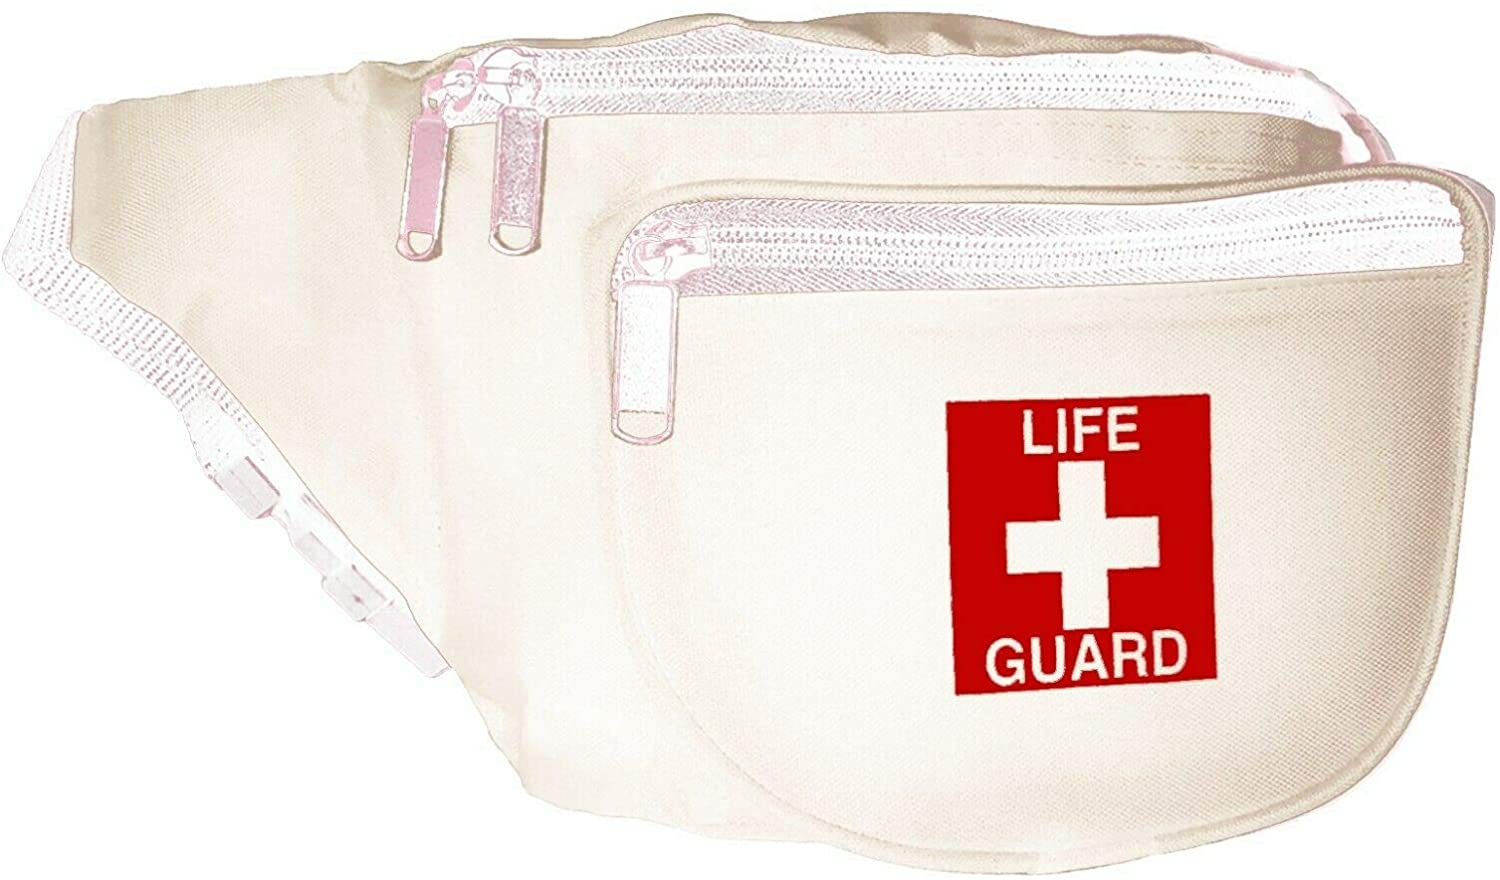 HSG Life Guard Fanny Pack